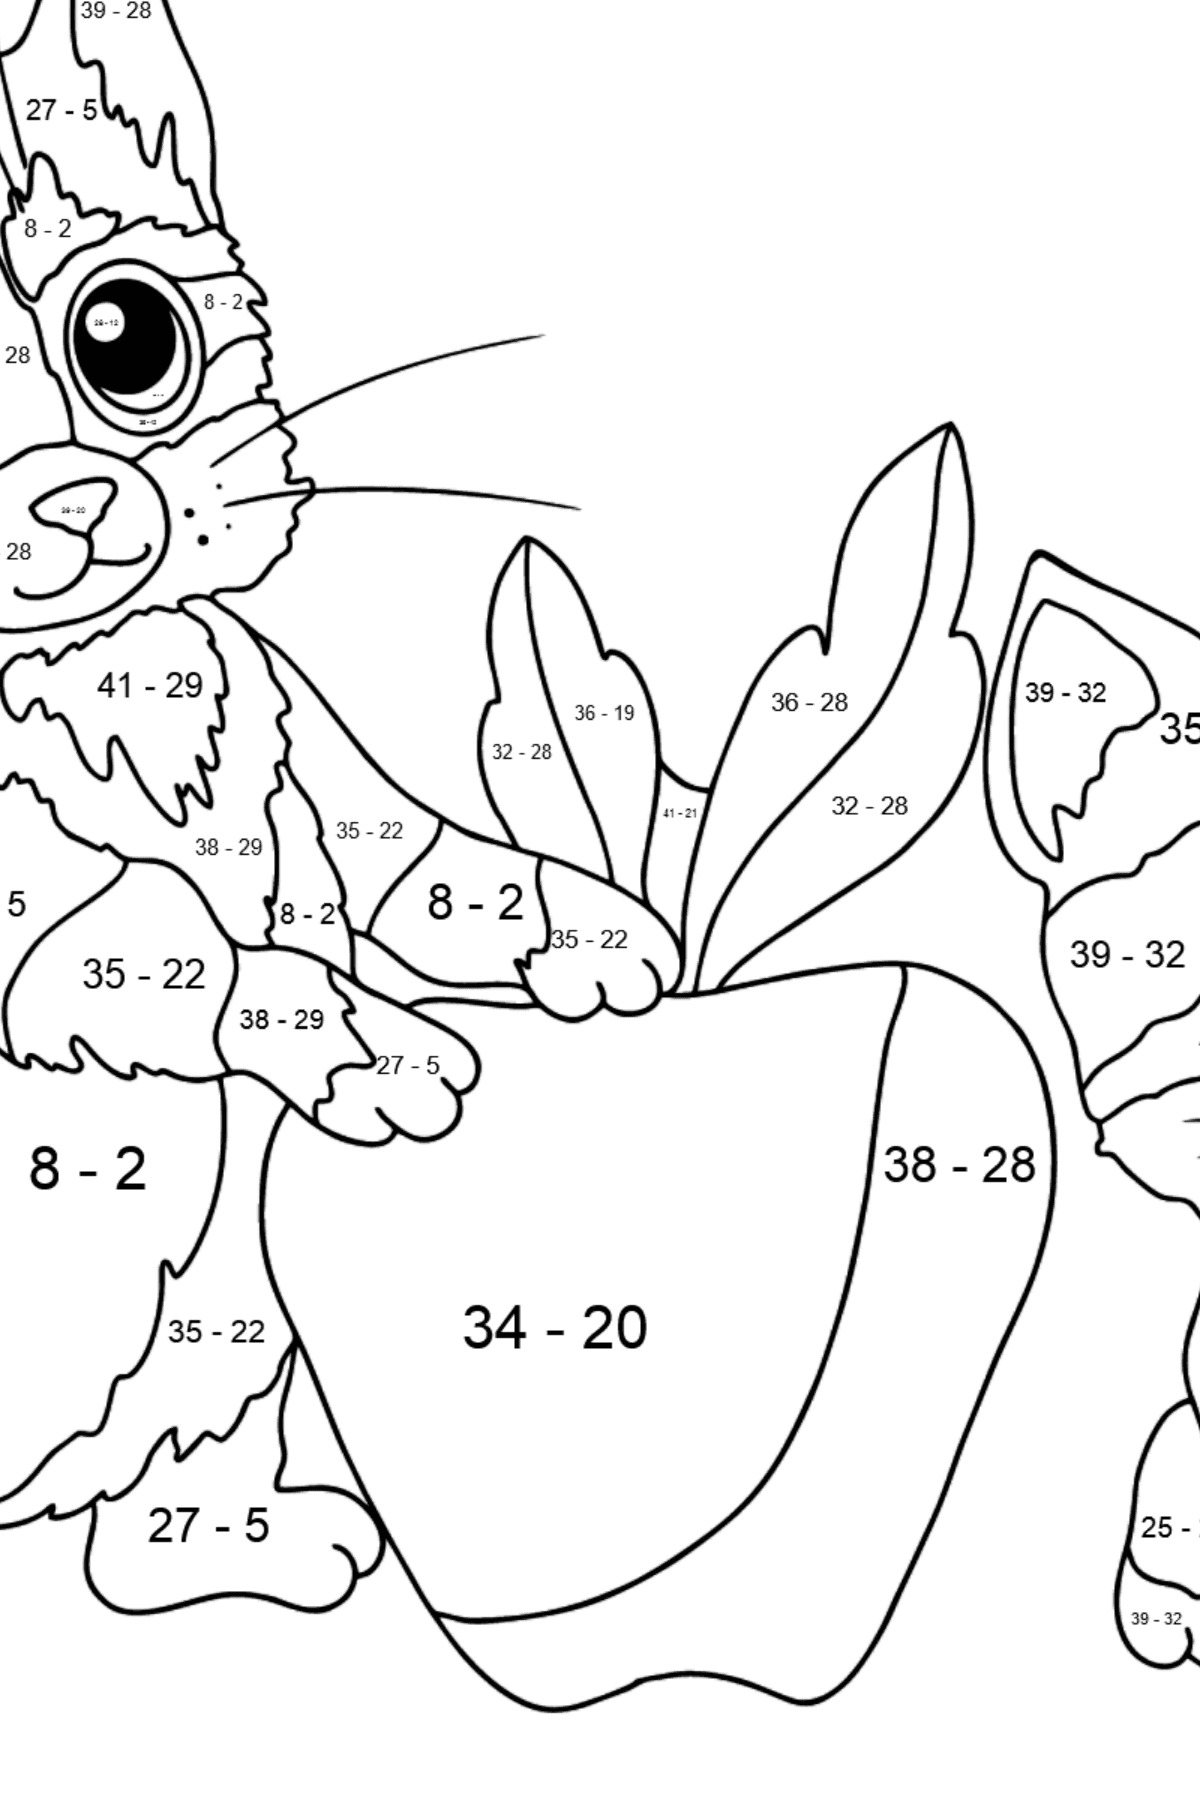 Coloring Page - Kittens are Having Fun with a Red Apple - Math Coloring - Subtraction for Kids